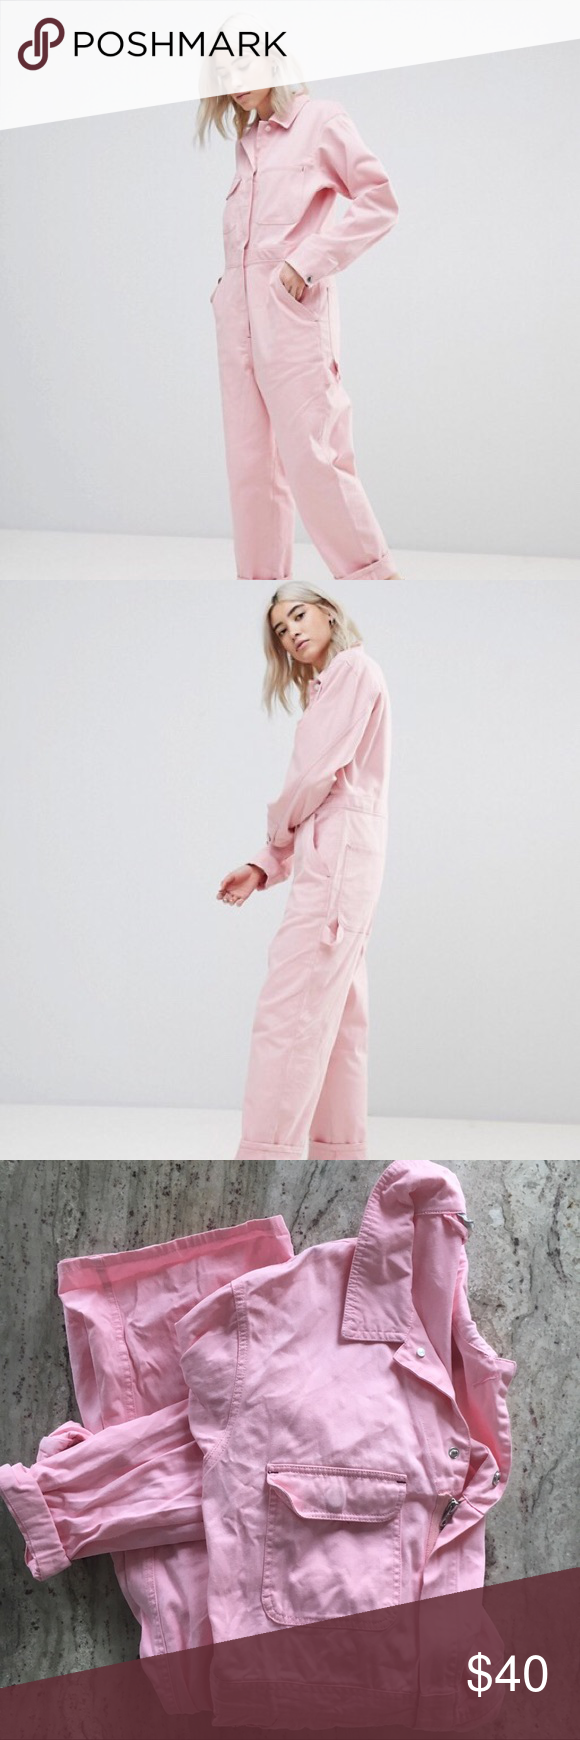 997d80f7059 ASOS Twill Boilersuit in Pink ASOS utility work jumpsuit! Perfect for  wearing that Glossier pink. Worn once! ASOS Pants Jumpsuits   Rompers